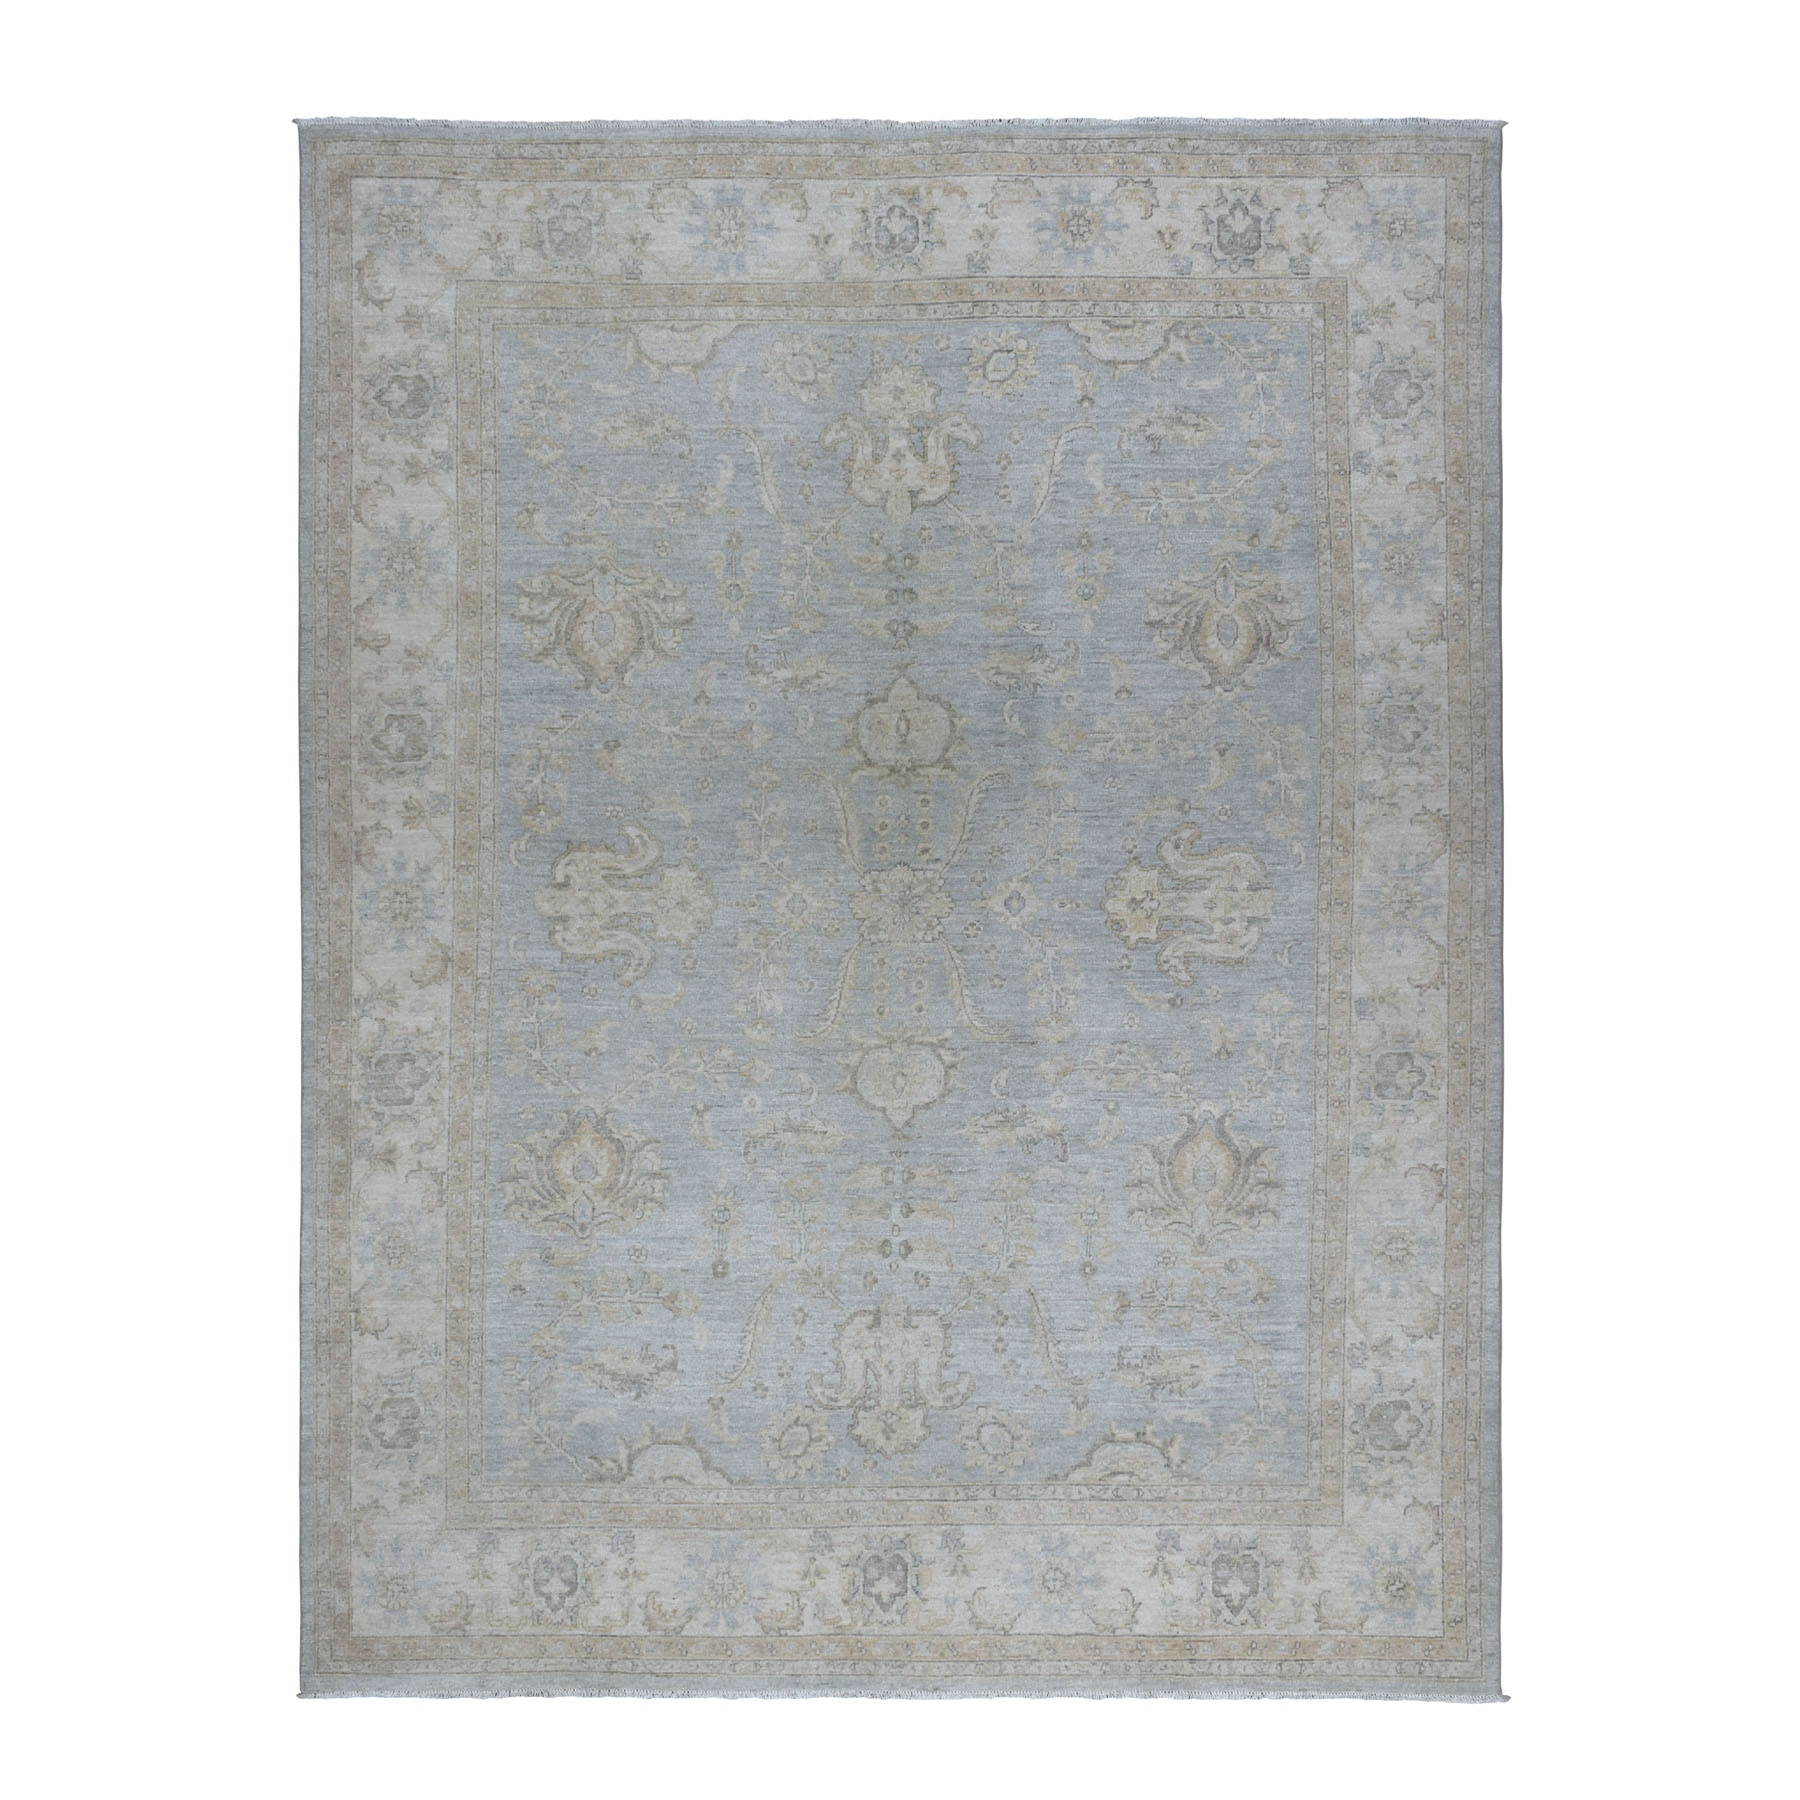 "7'10""x10'9"" Gray Stone Wash Peshawar Pure Wool Hand Knotted Oriental Rug"